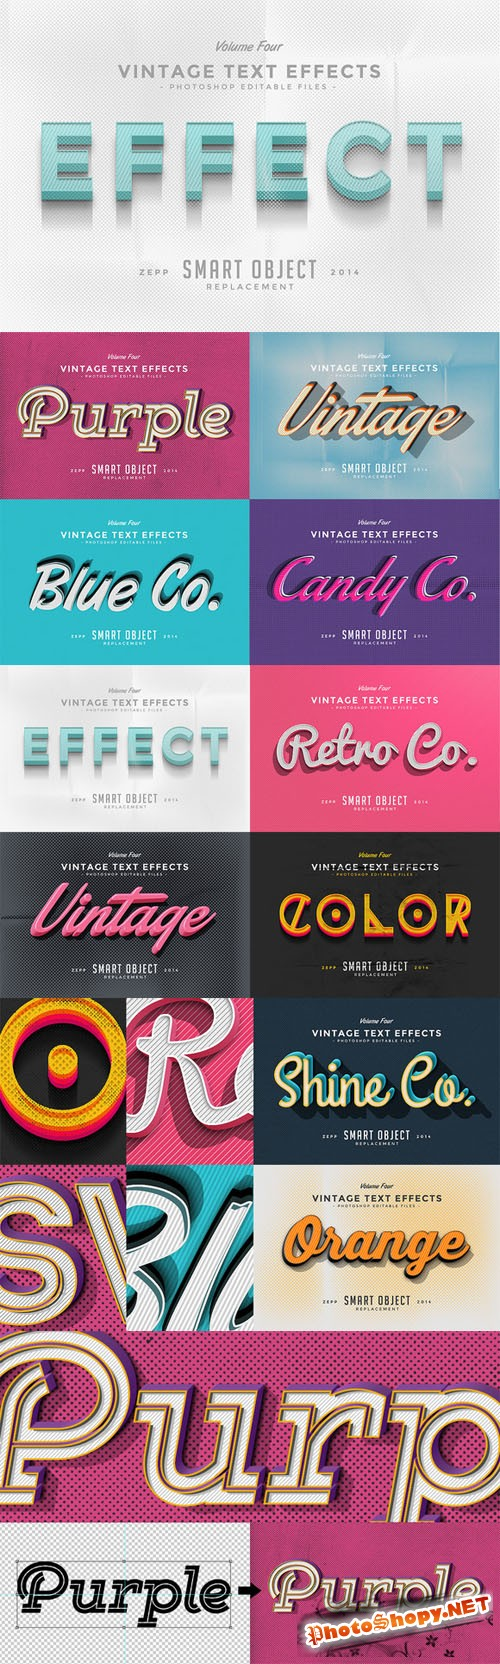 CreativeMarket - Vintage Text Effects Vol.4